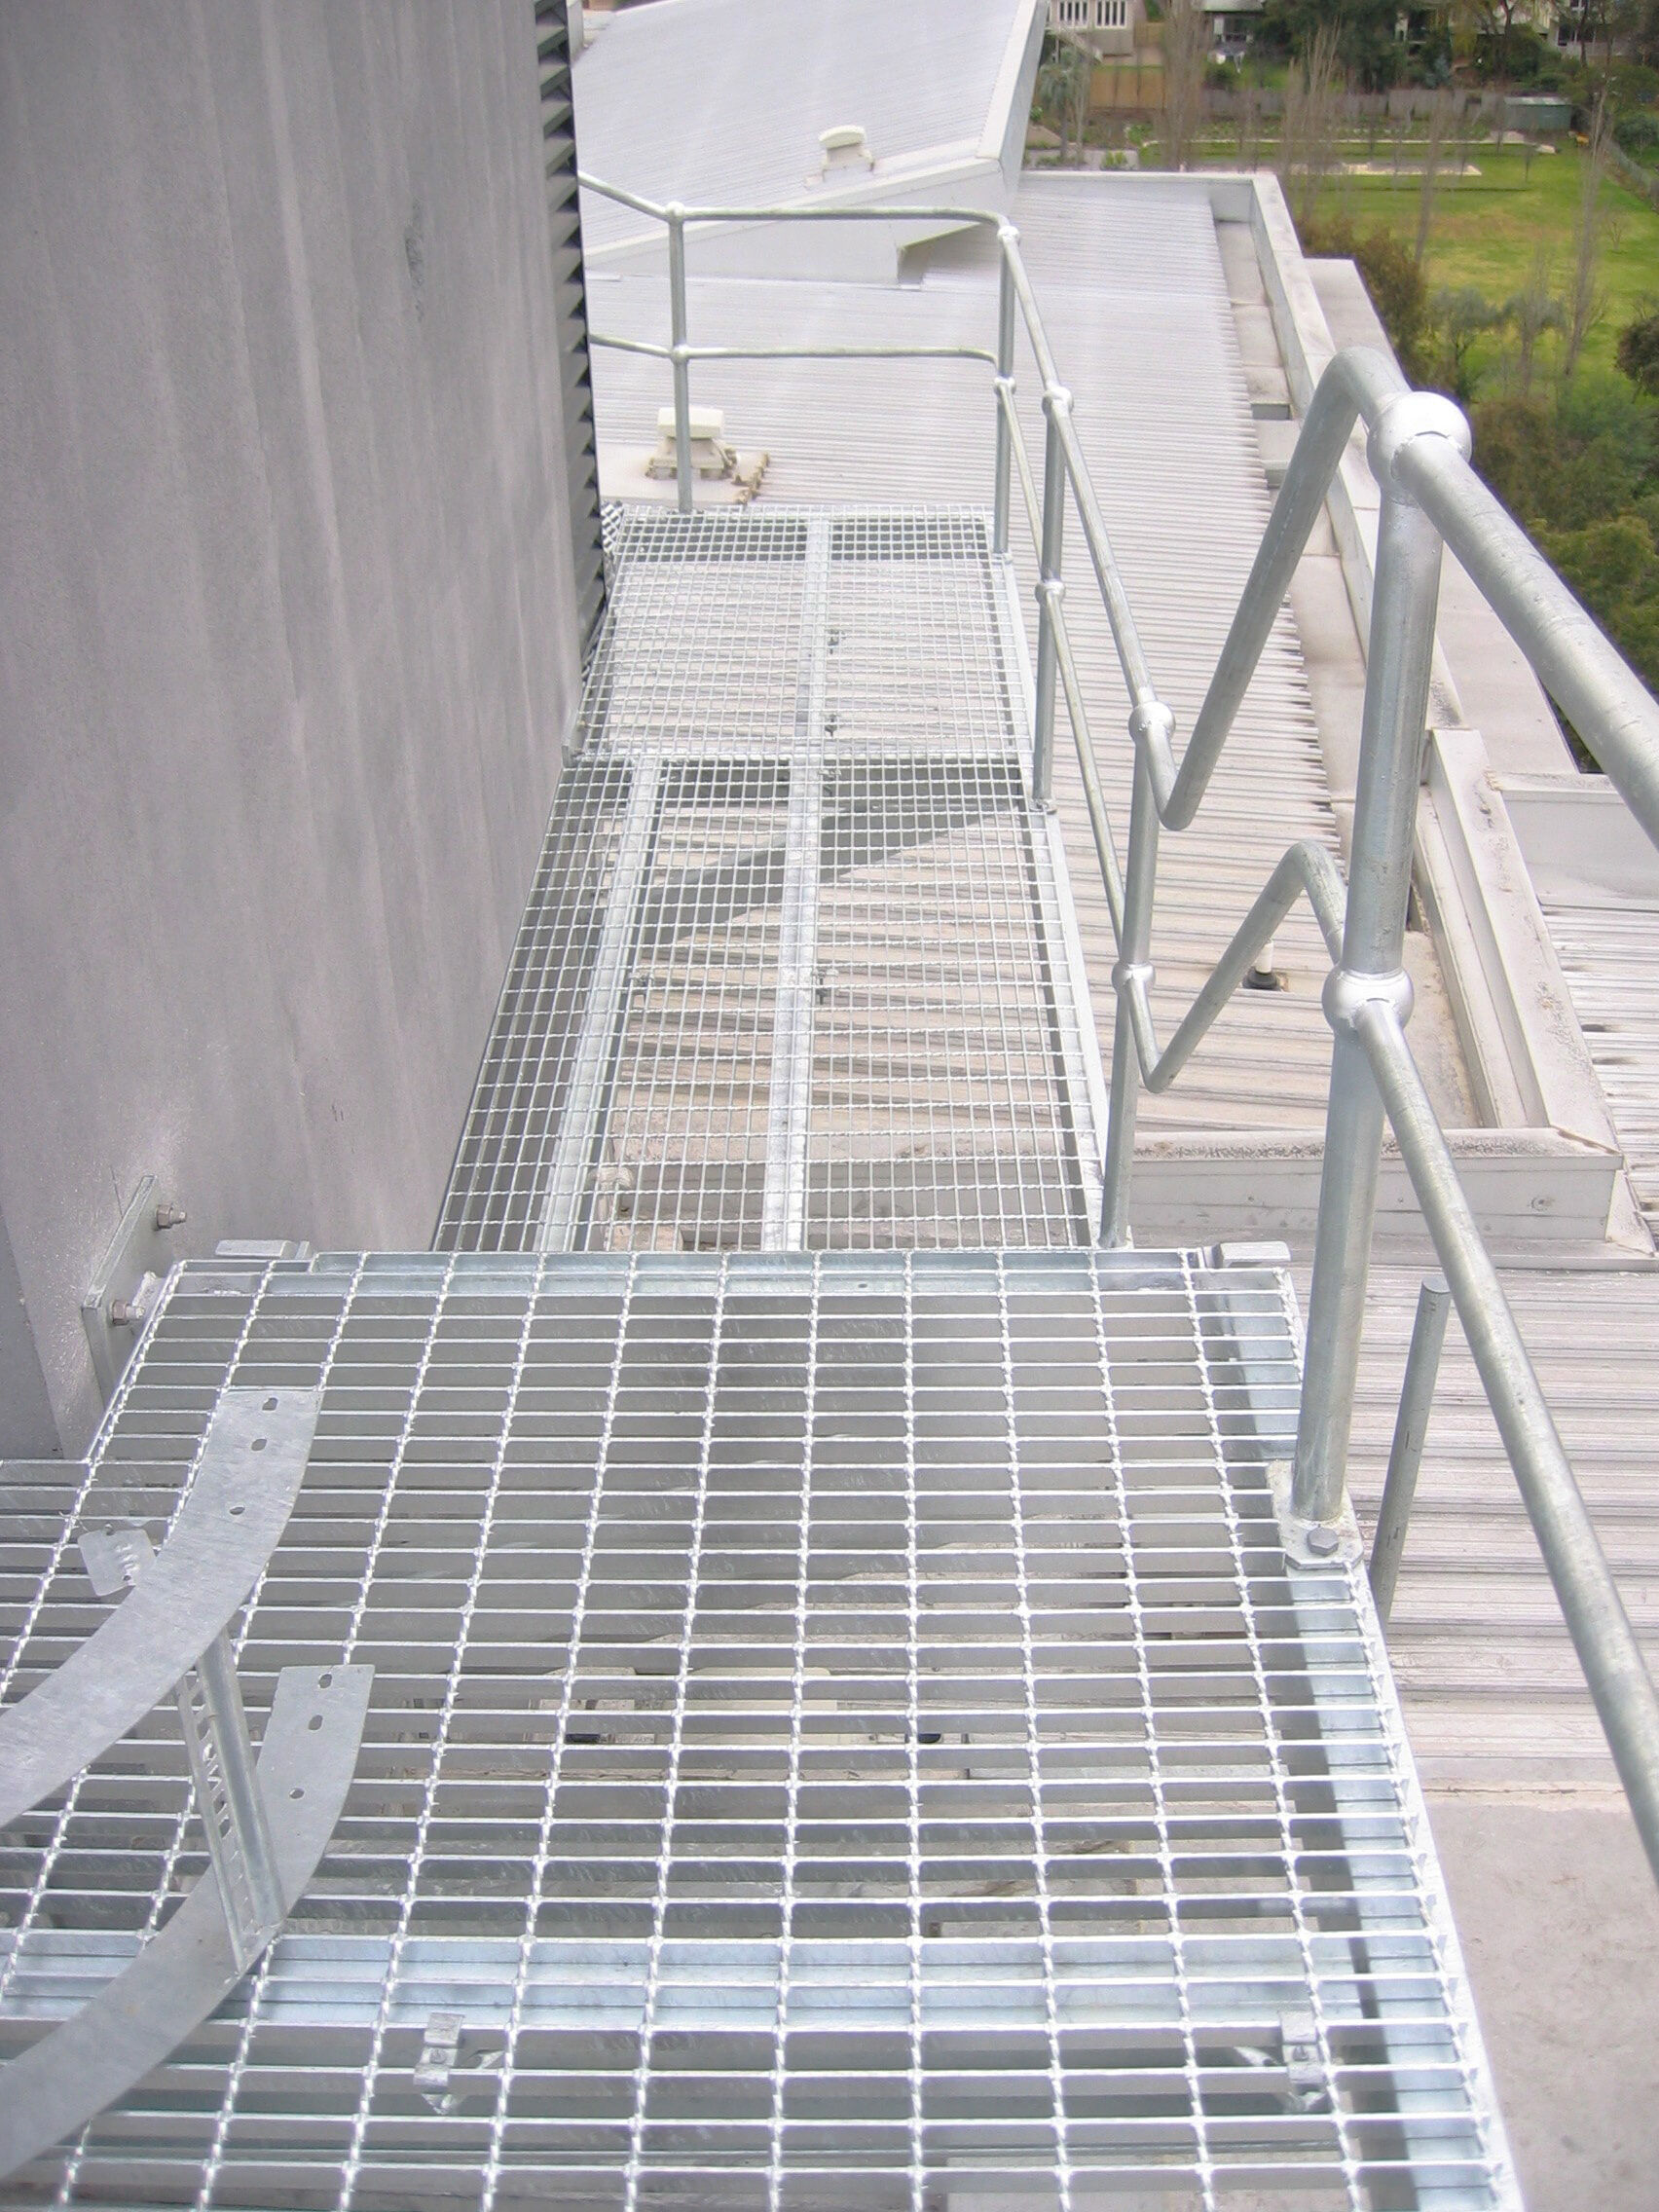 Access platforms and Access Stairs